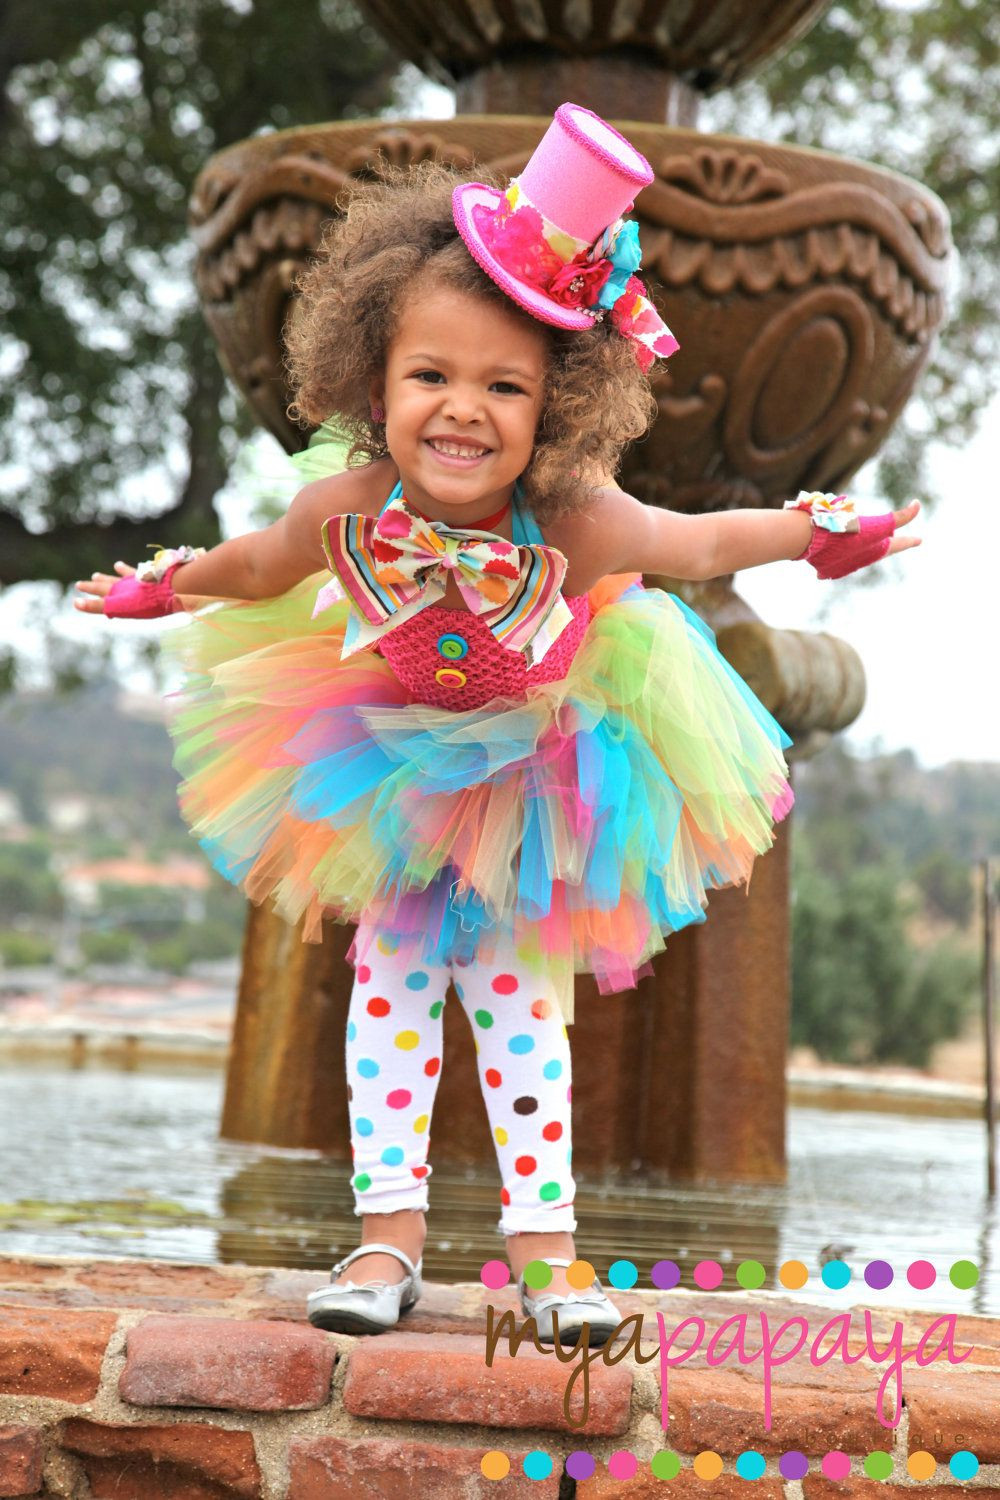 Mad Hatter Tea Party Costume Ideas  Mad Hatter Costume Tutu Dress 12months 5t Alice in